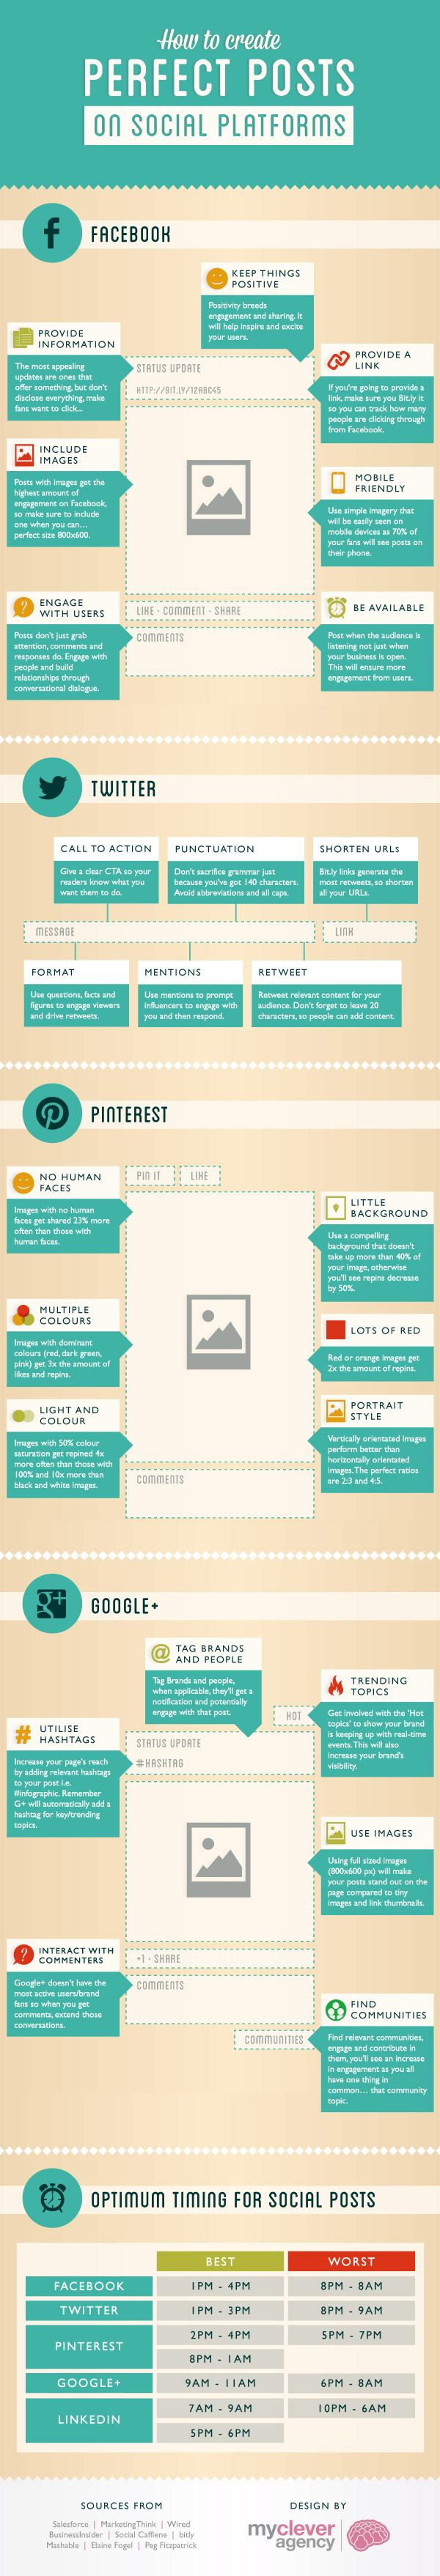 This is great! A practical guide to what/when to post on your different social media channels. Handy!